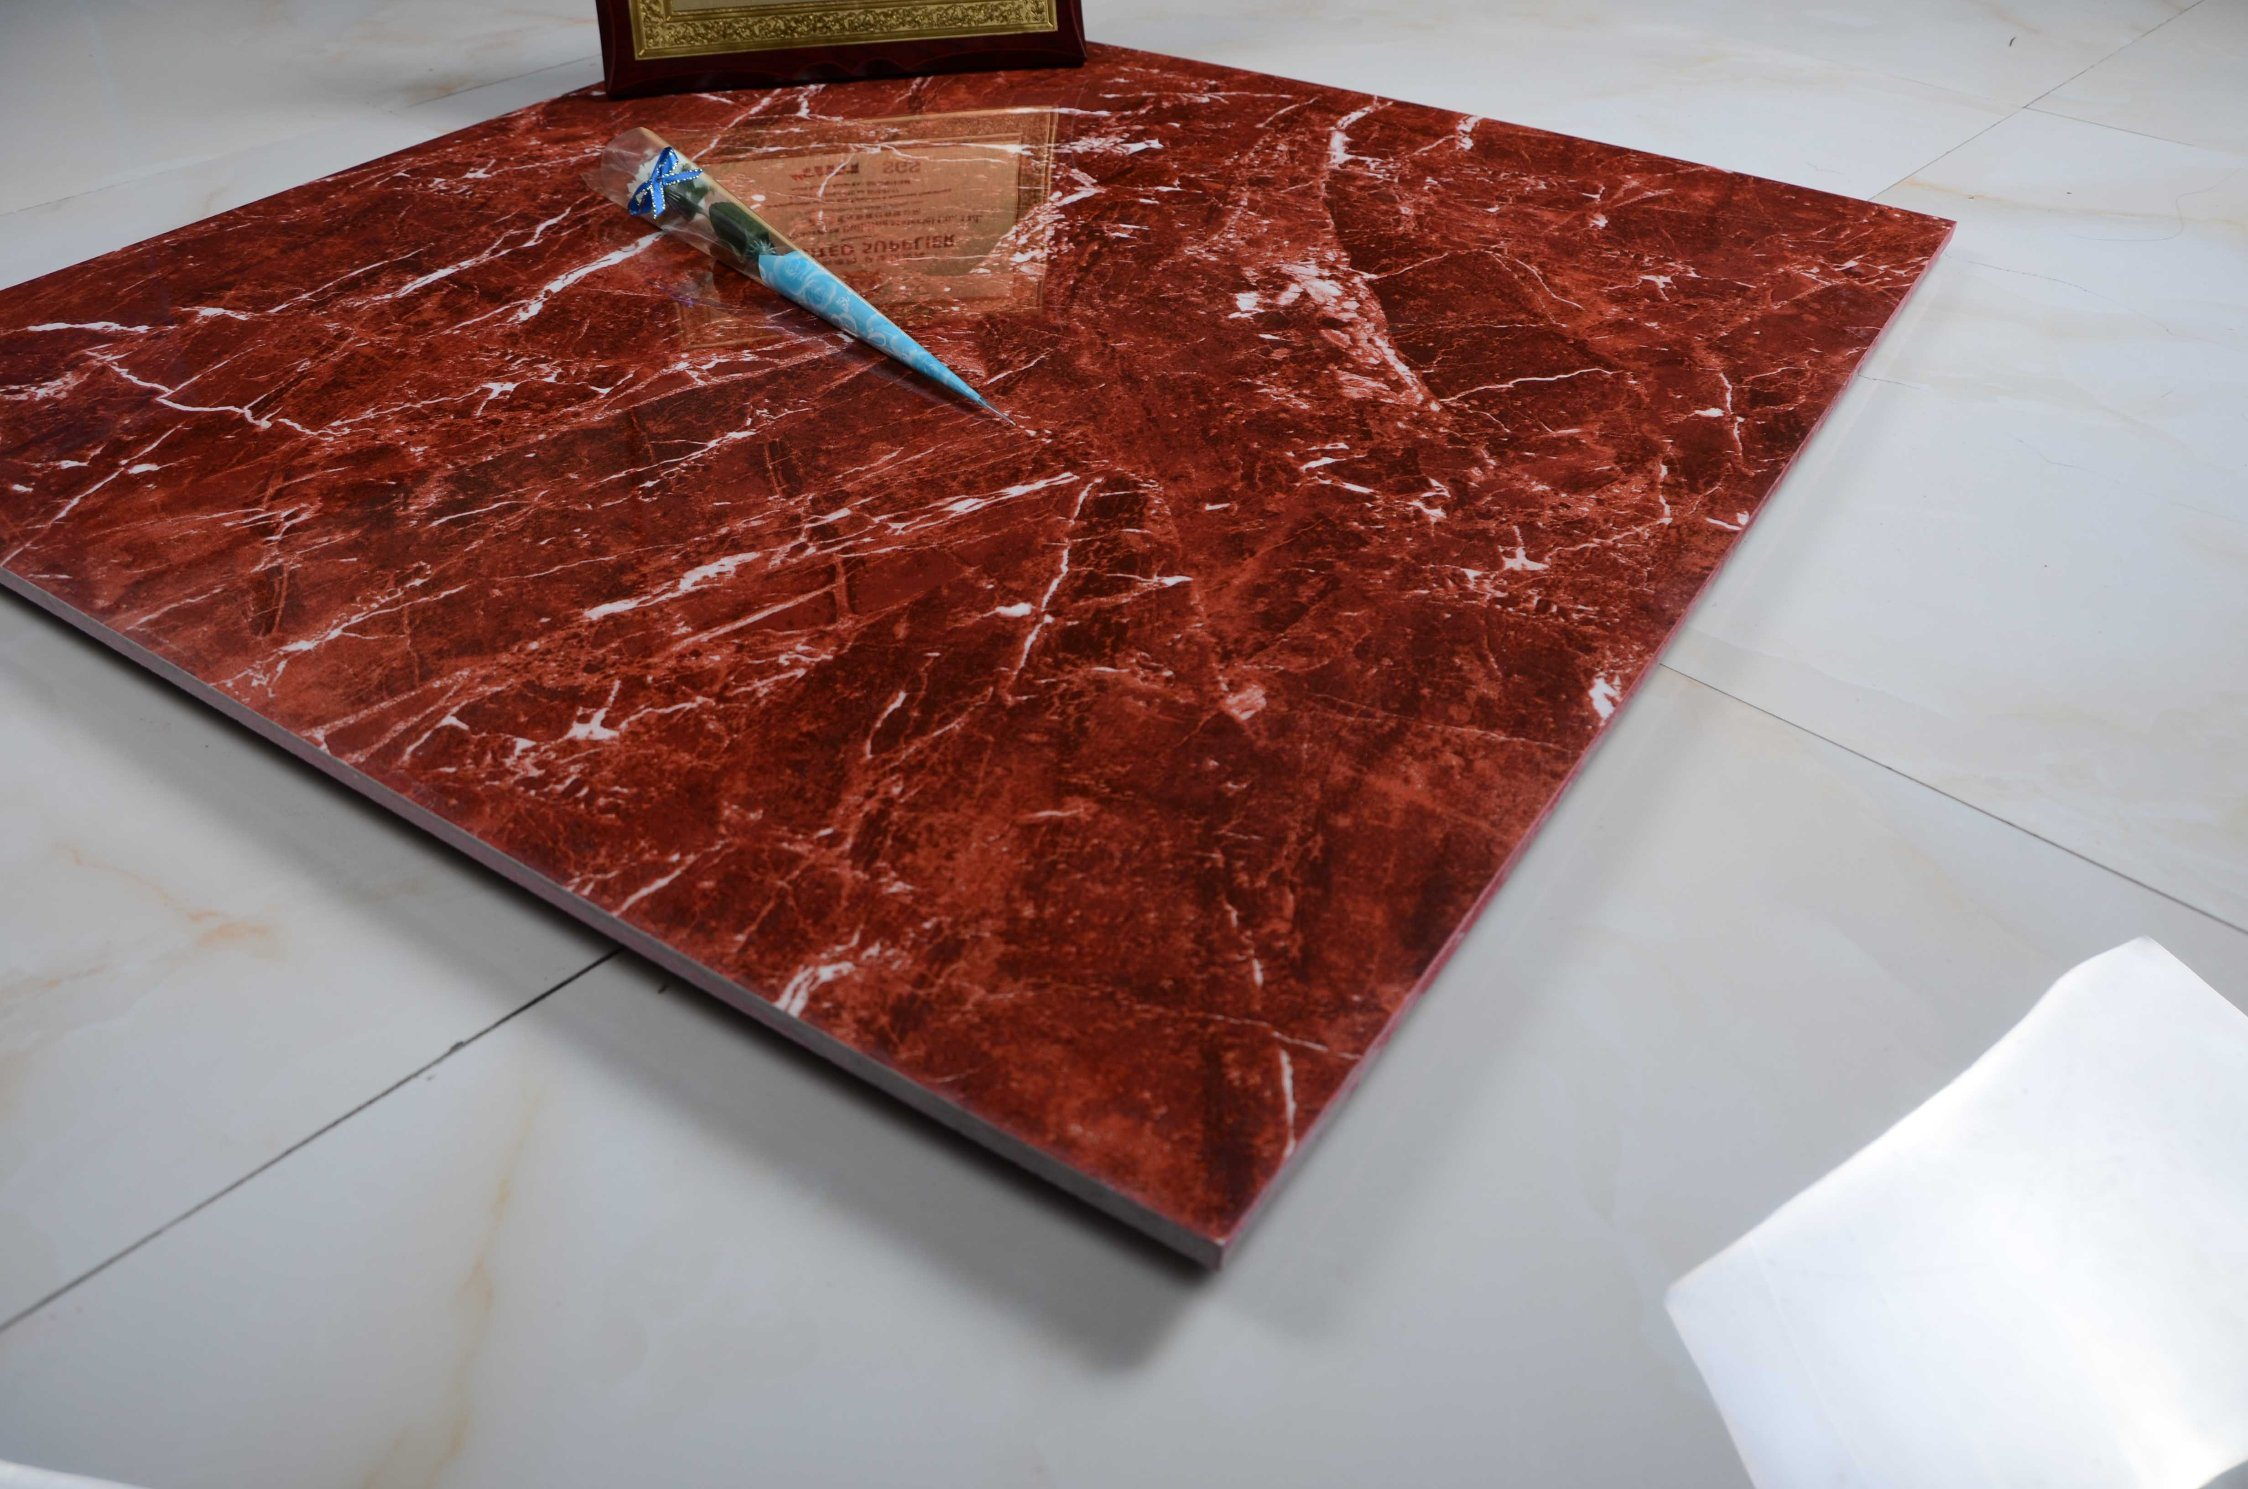 China red color full glazed porcelain ceramic floor tile stone tile red color full glazed porcelain ceramic floor tile stone tile 800800mm dailygadgetfo Gallery